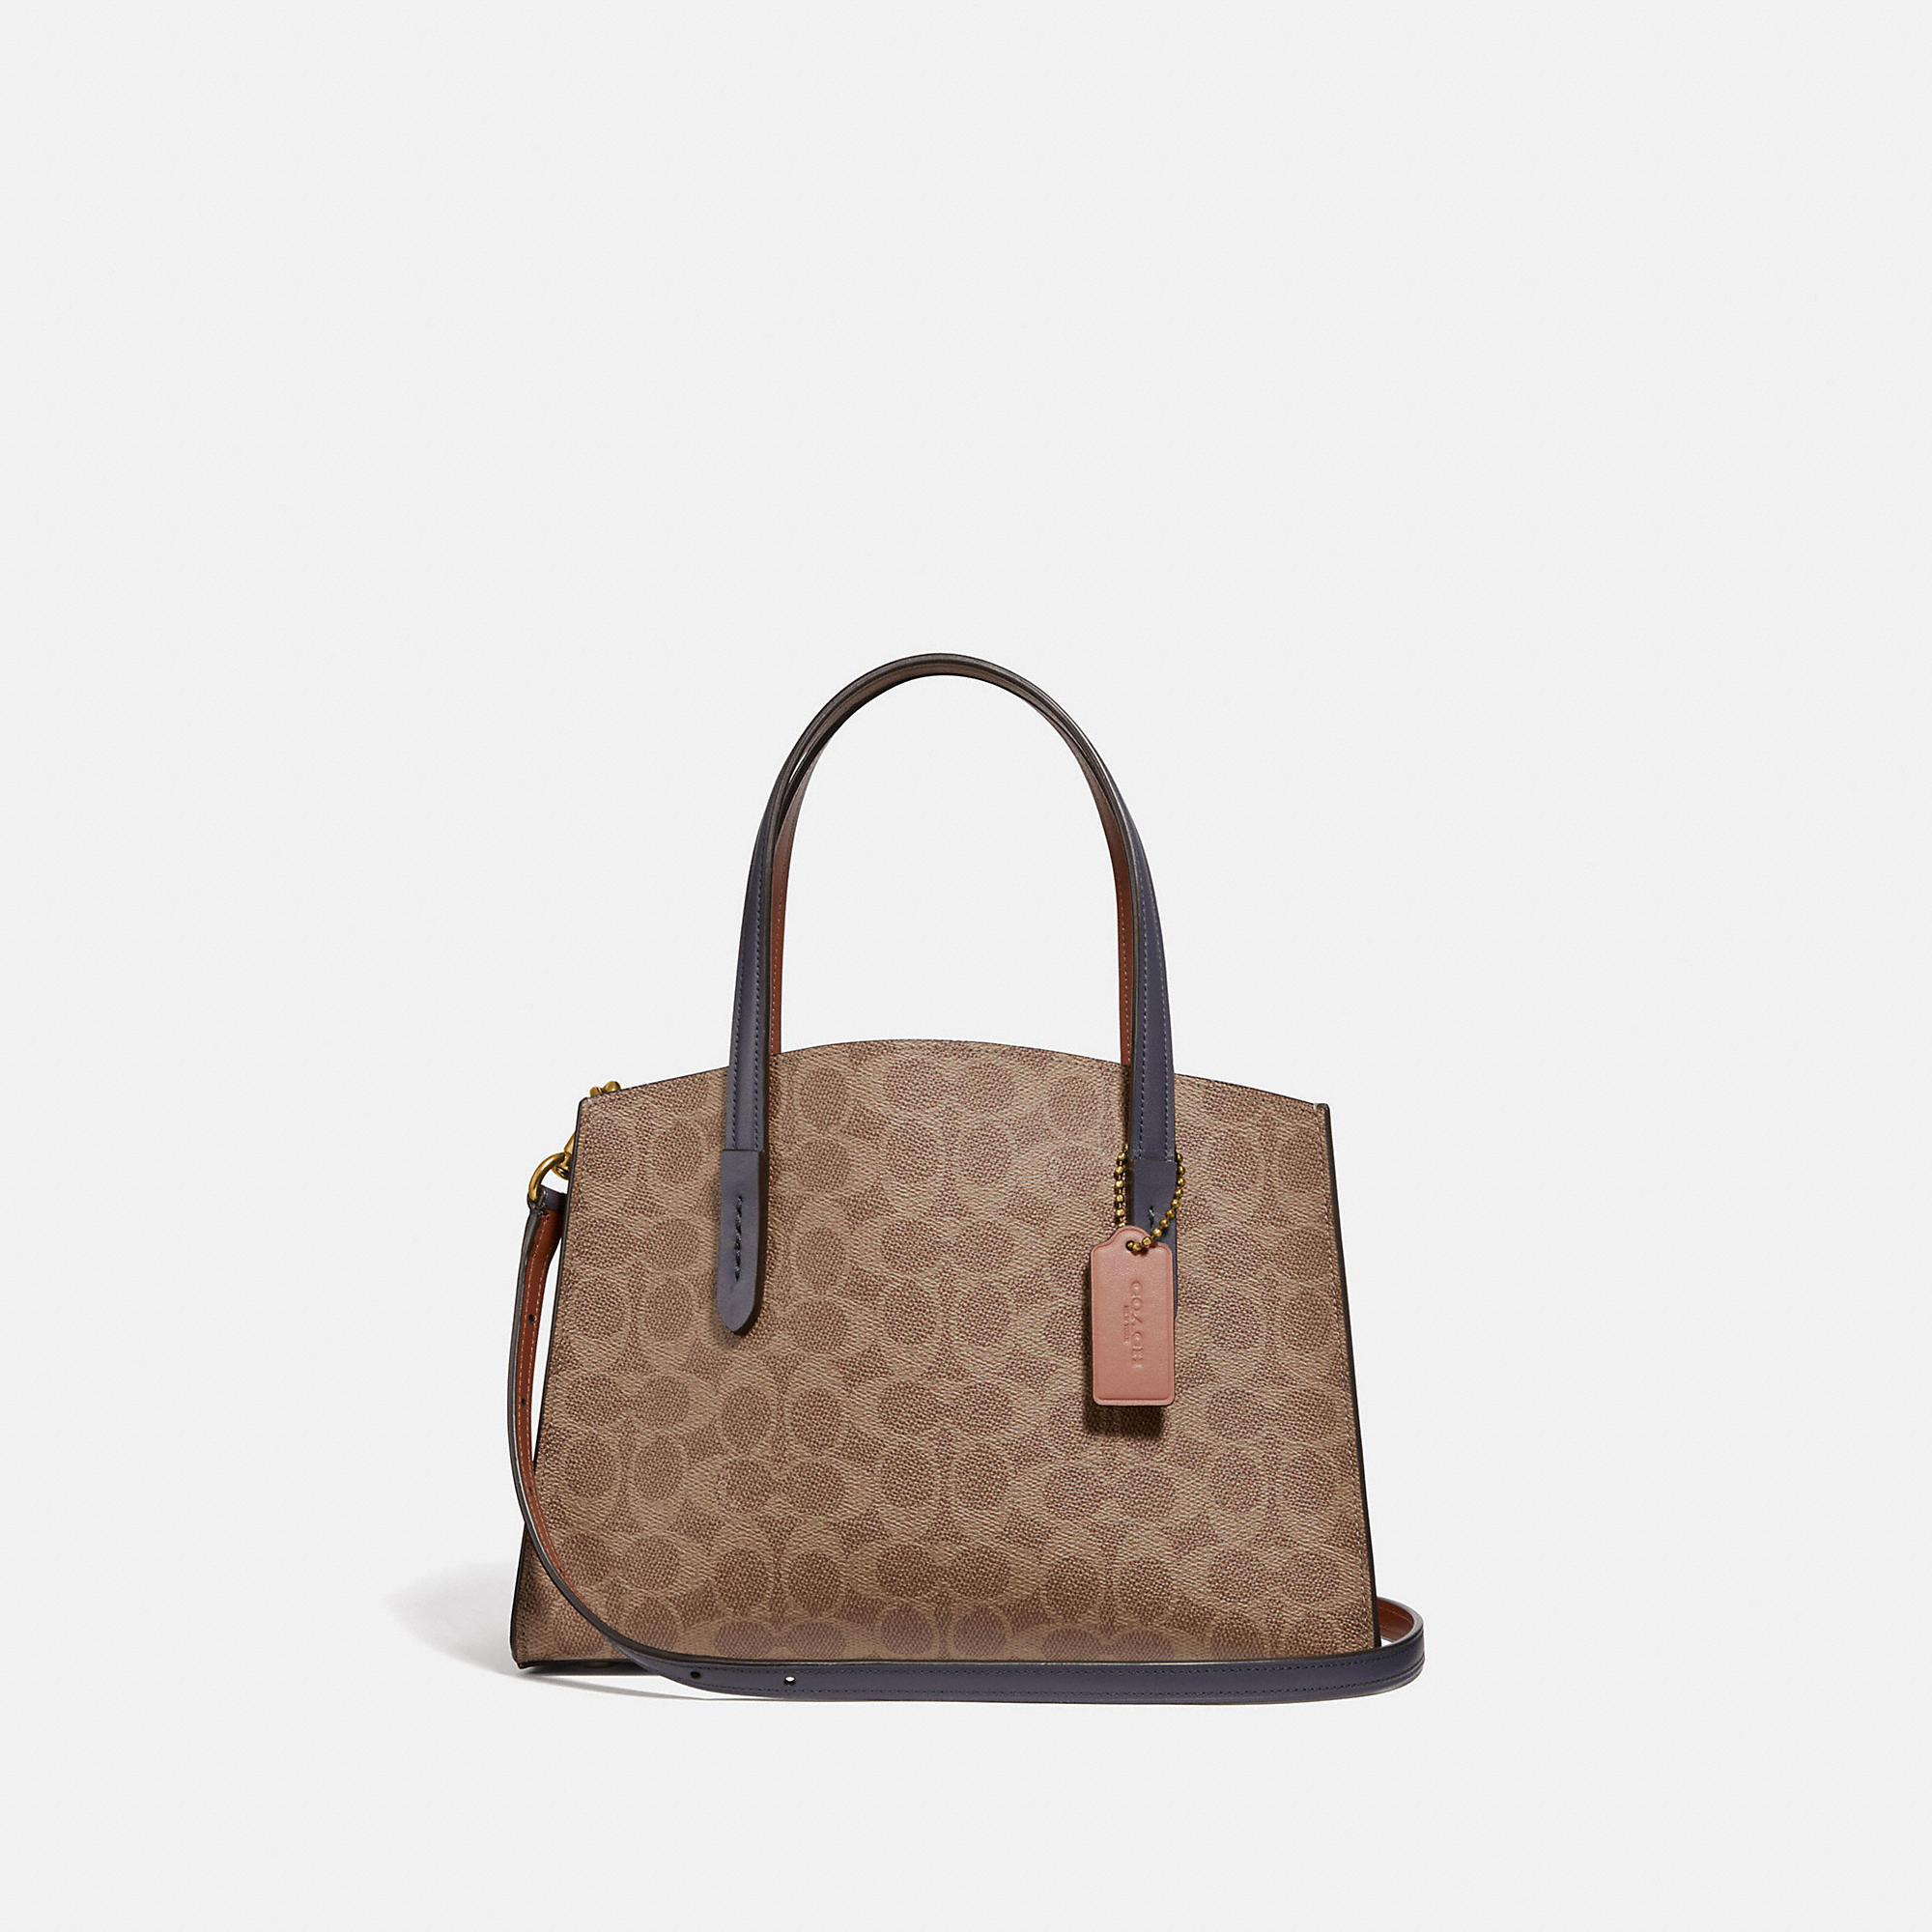 COACH COACH CHARLIE CARRYALL 28 IN SIGNATURE CANVAS - WOMEN'S